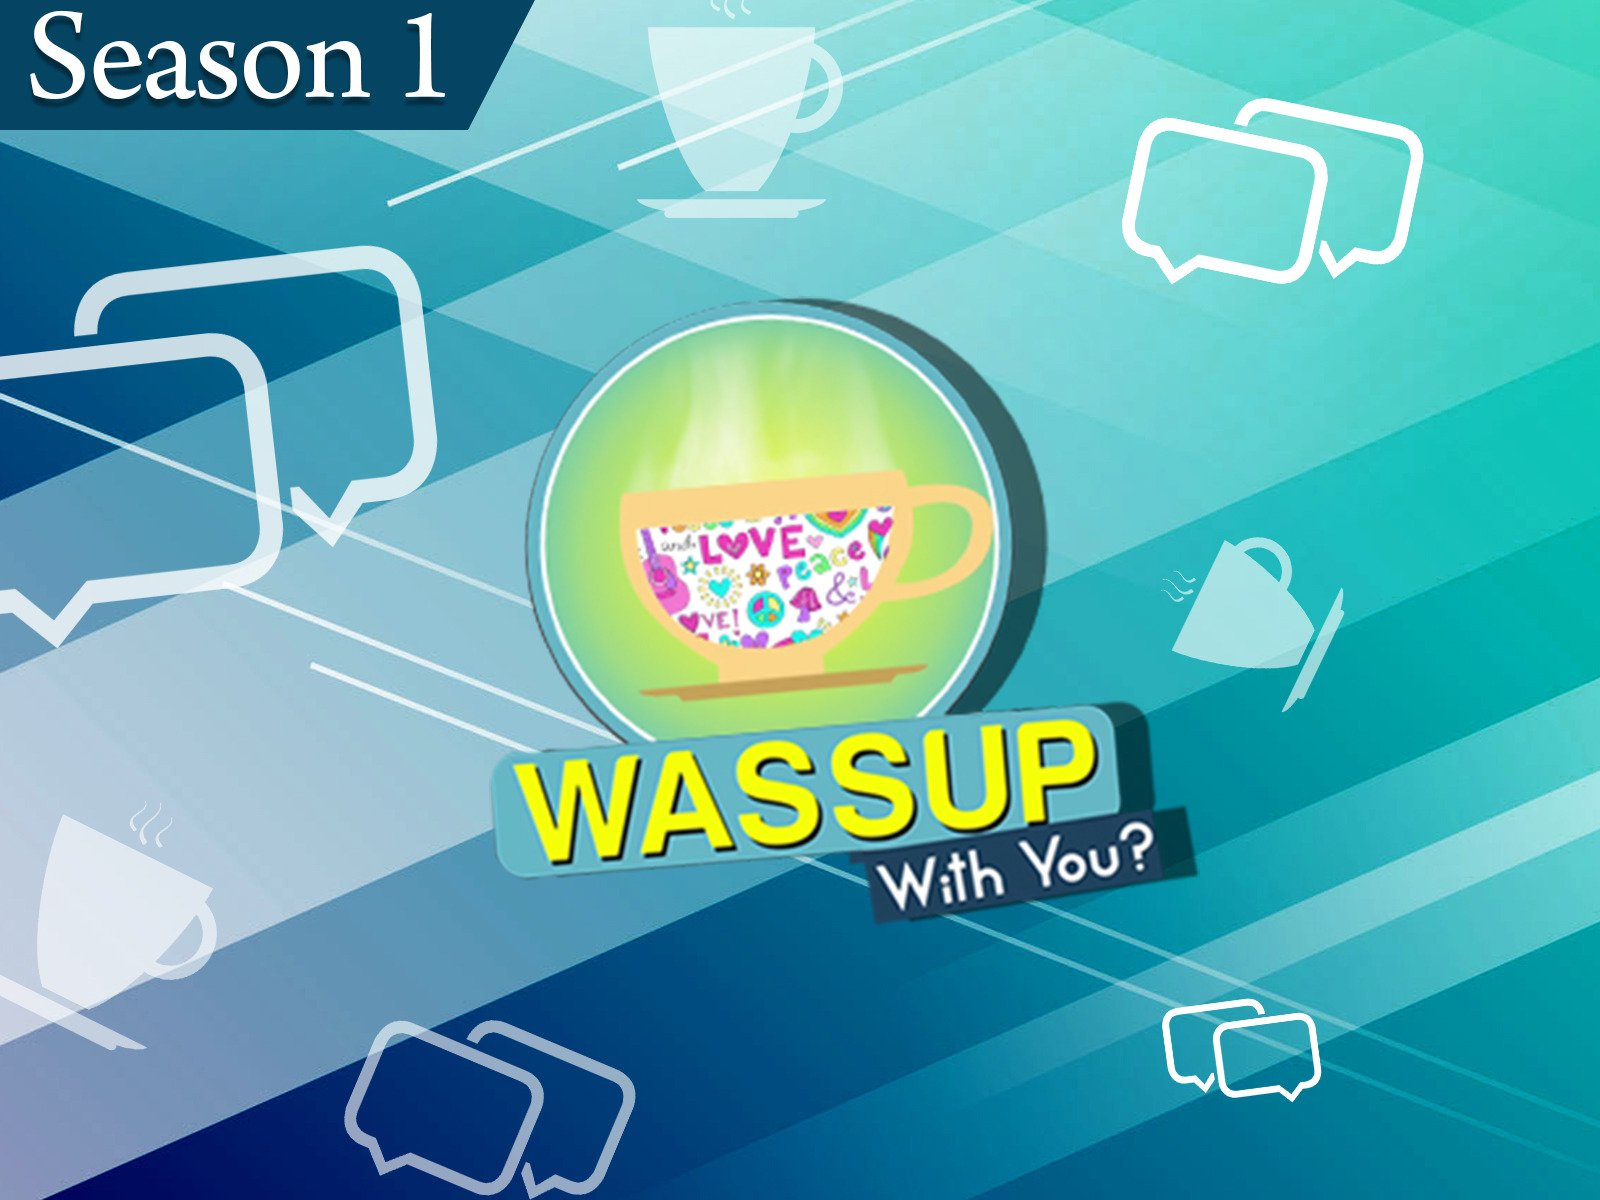 WassUp With You - Season 1